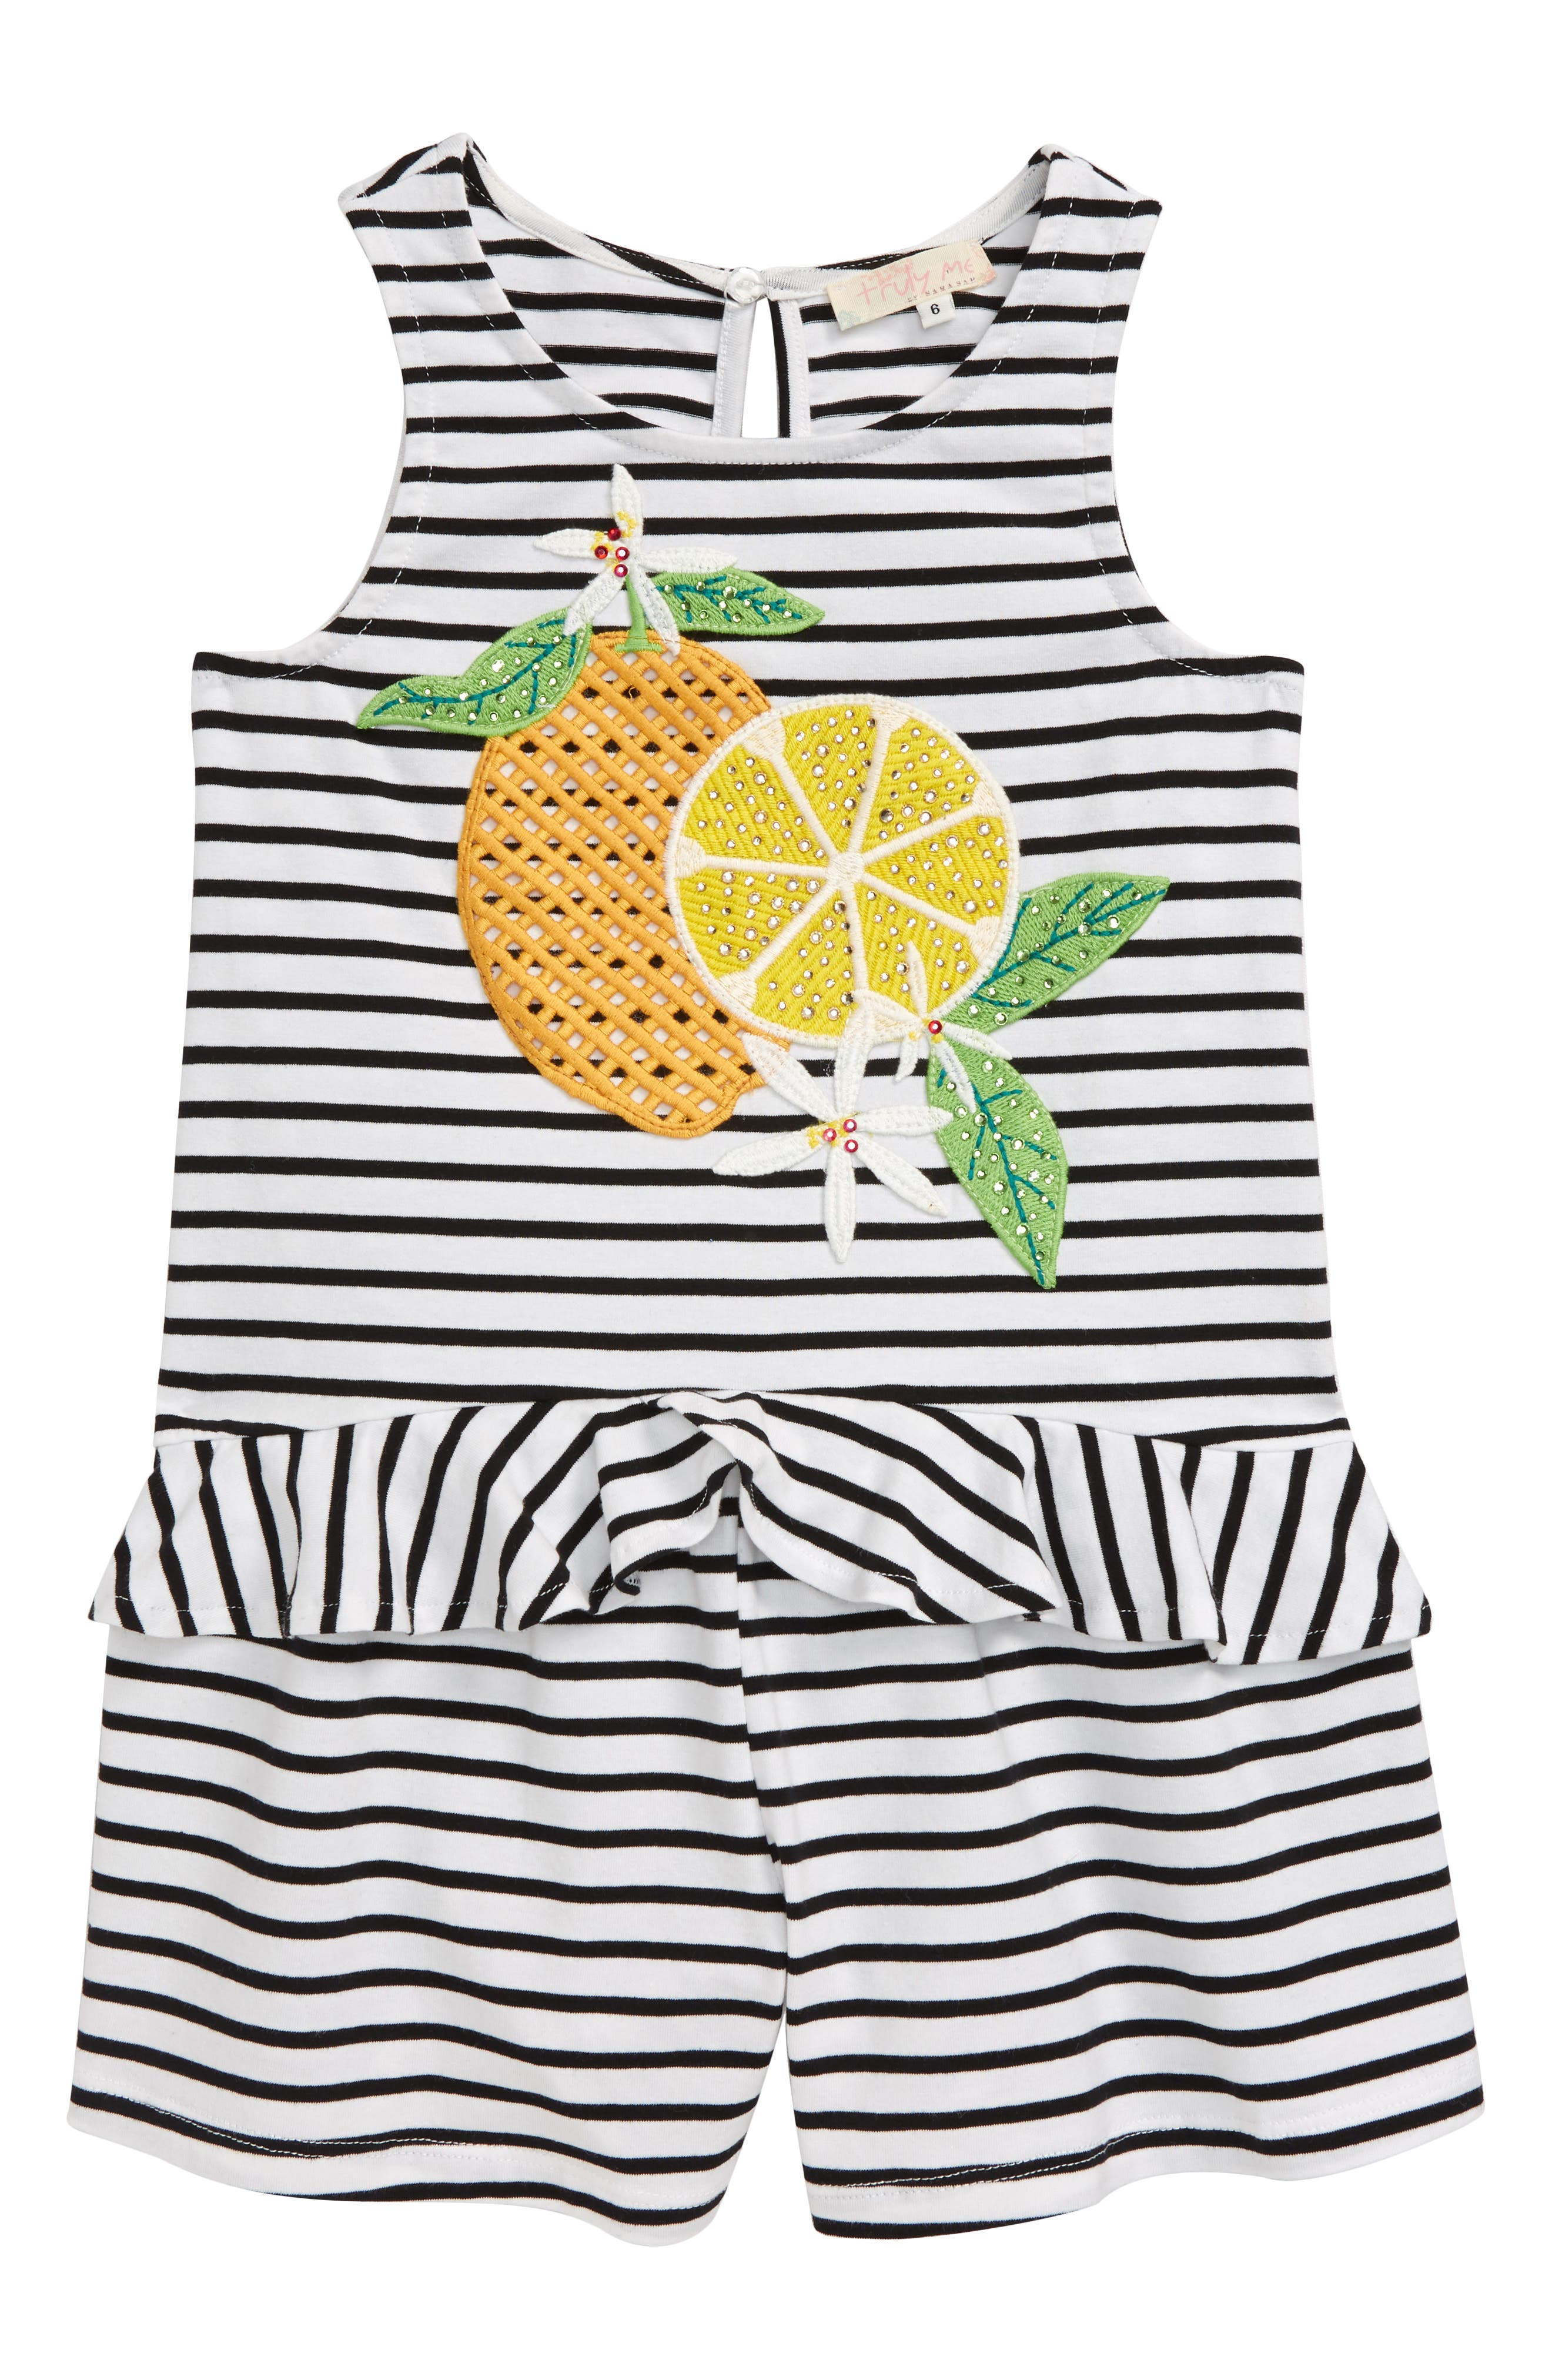 Toddler Girls Truly Me Lemon Sleeveless Stretch Cotton Romper Size 3T  Black